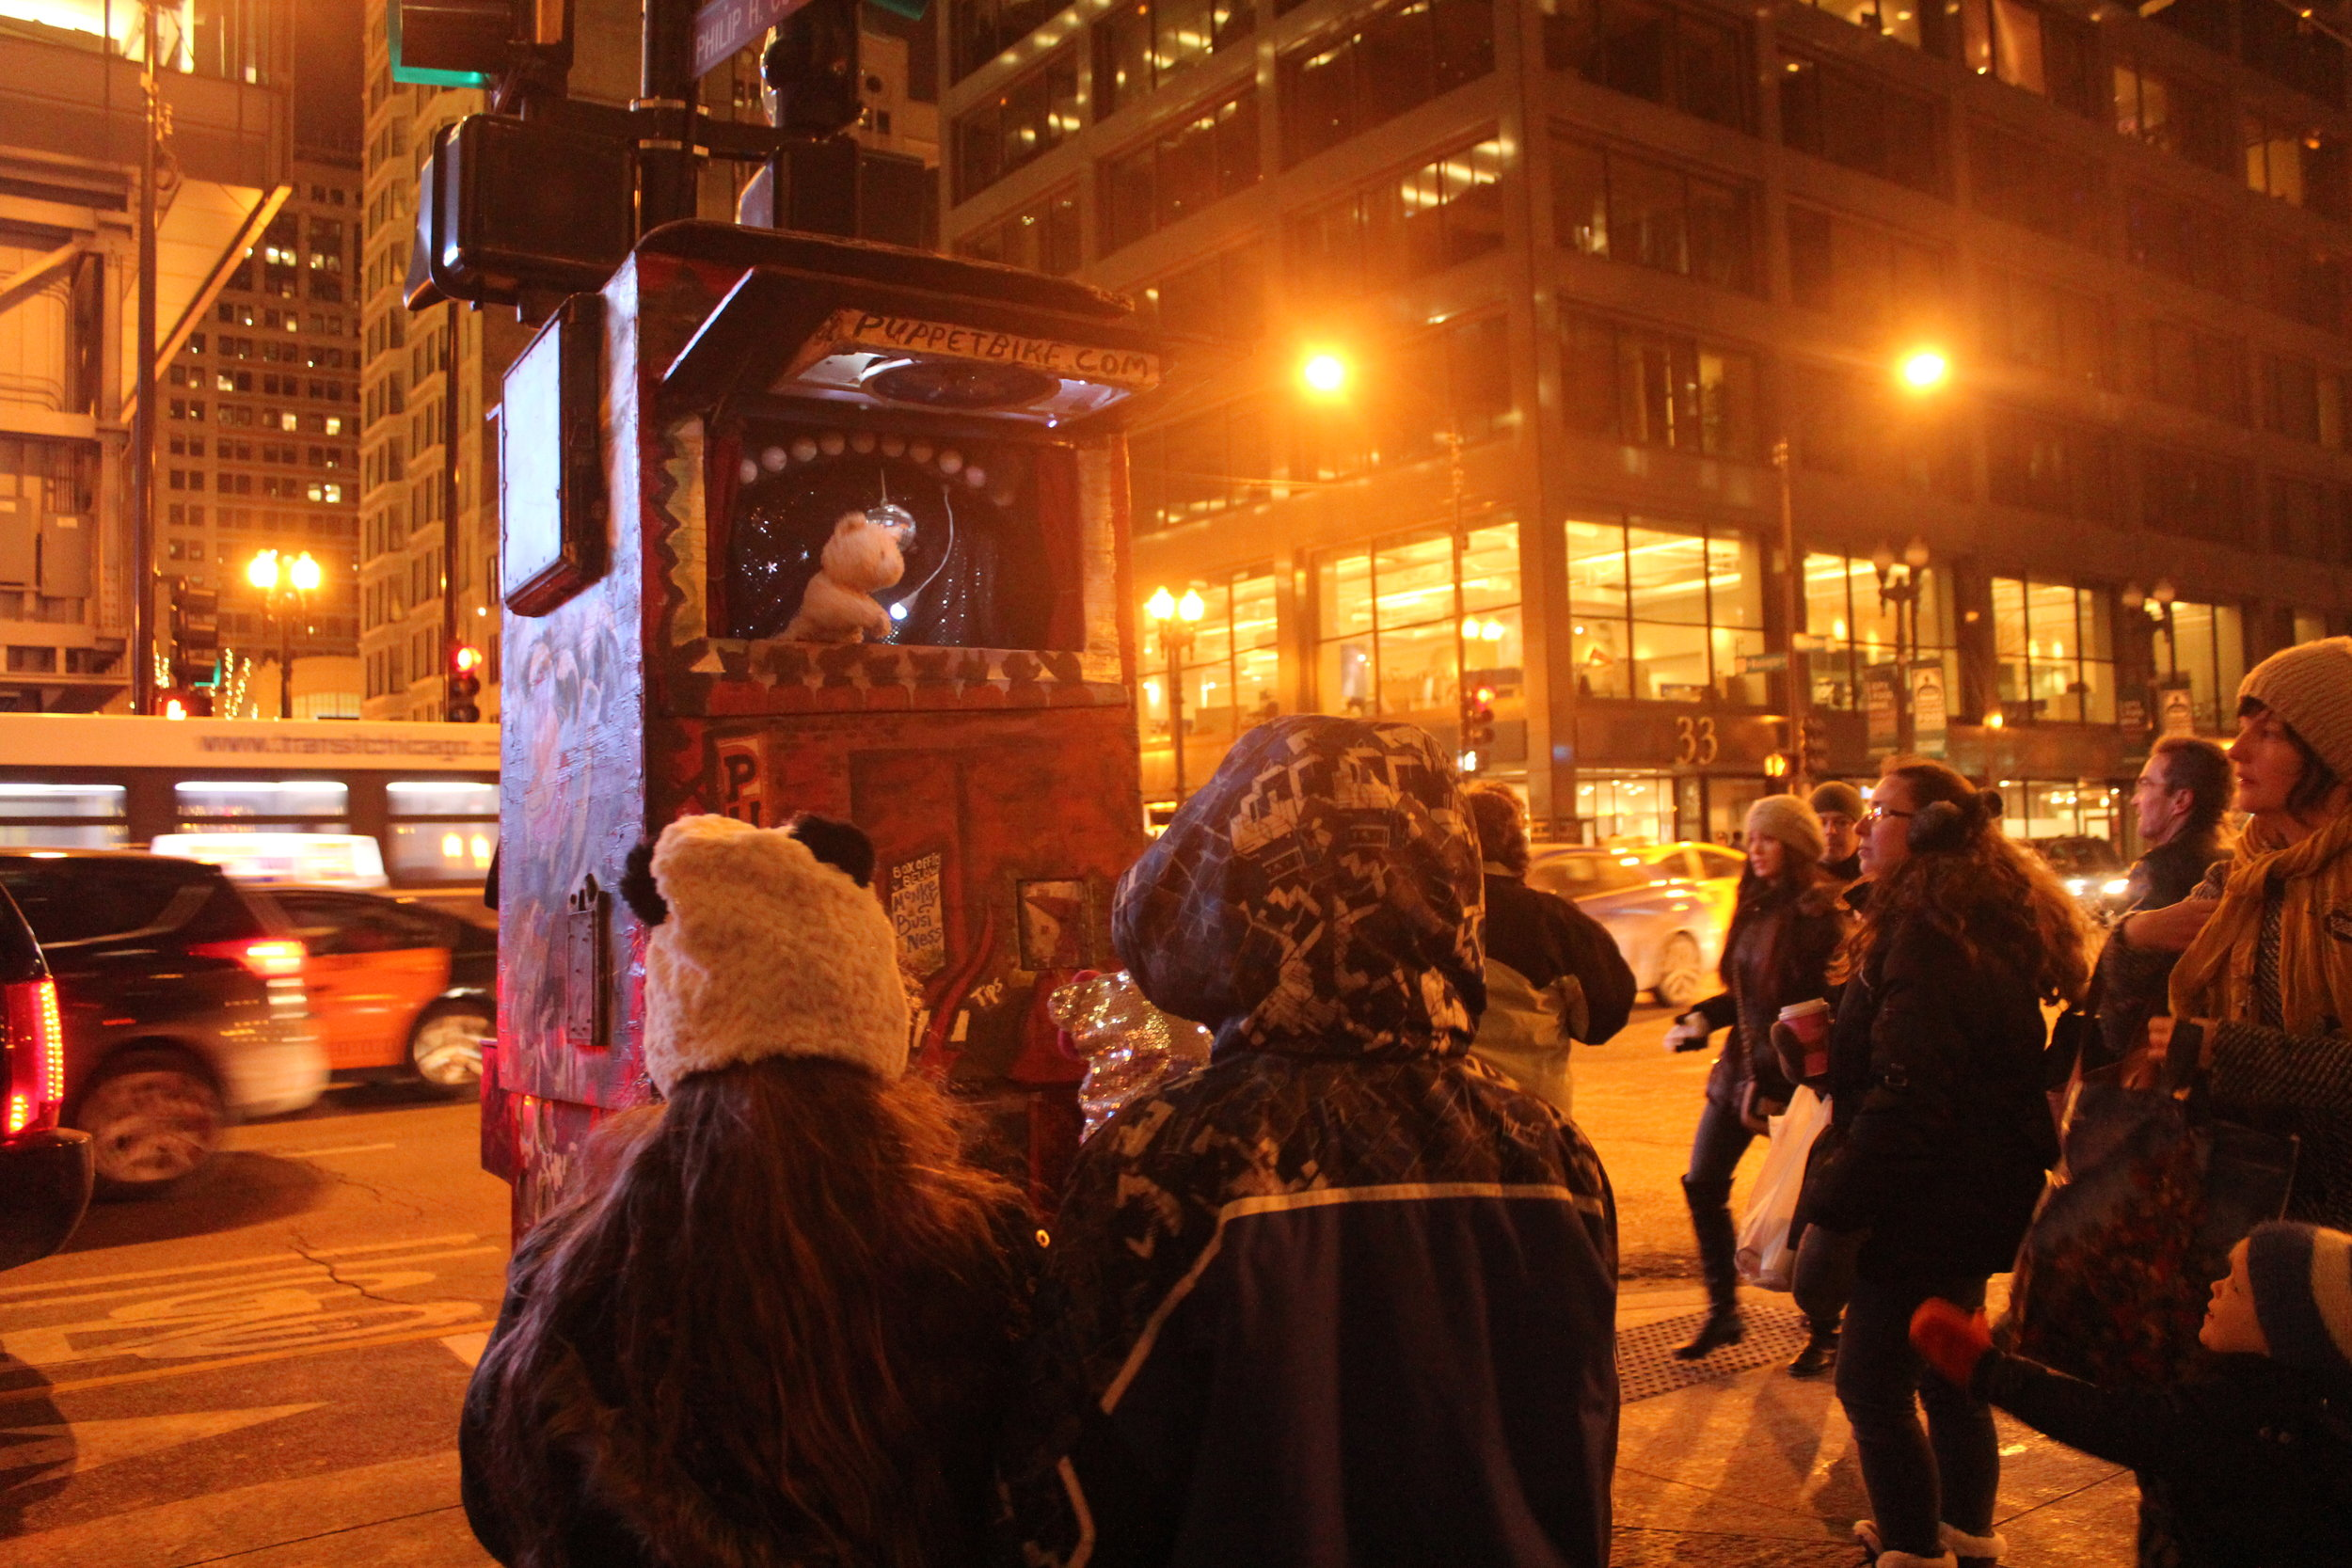 Puppet Bike delighting Chicago's young and old